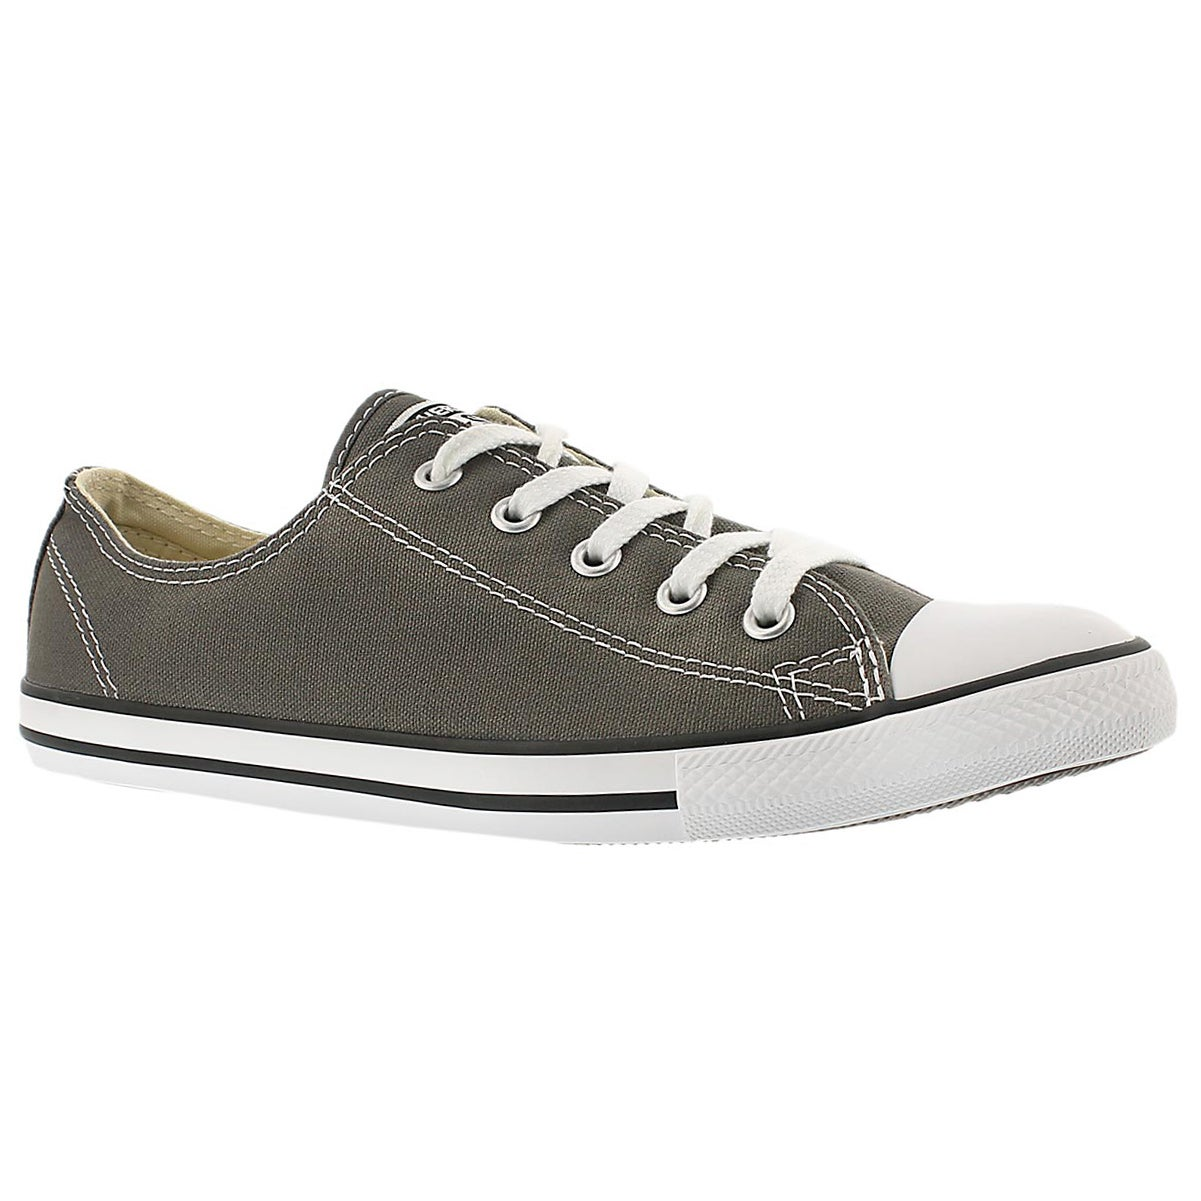 Lds CTAS Dainty Canvas Ox charcoal snkr